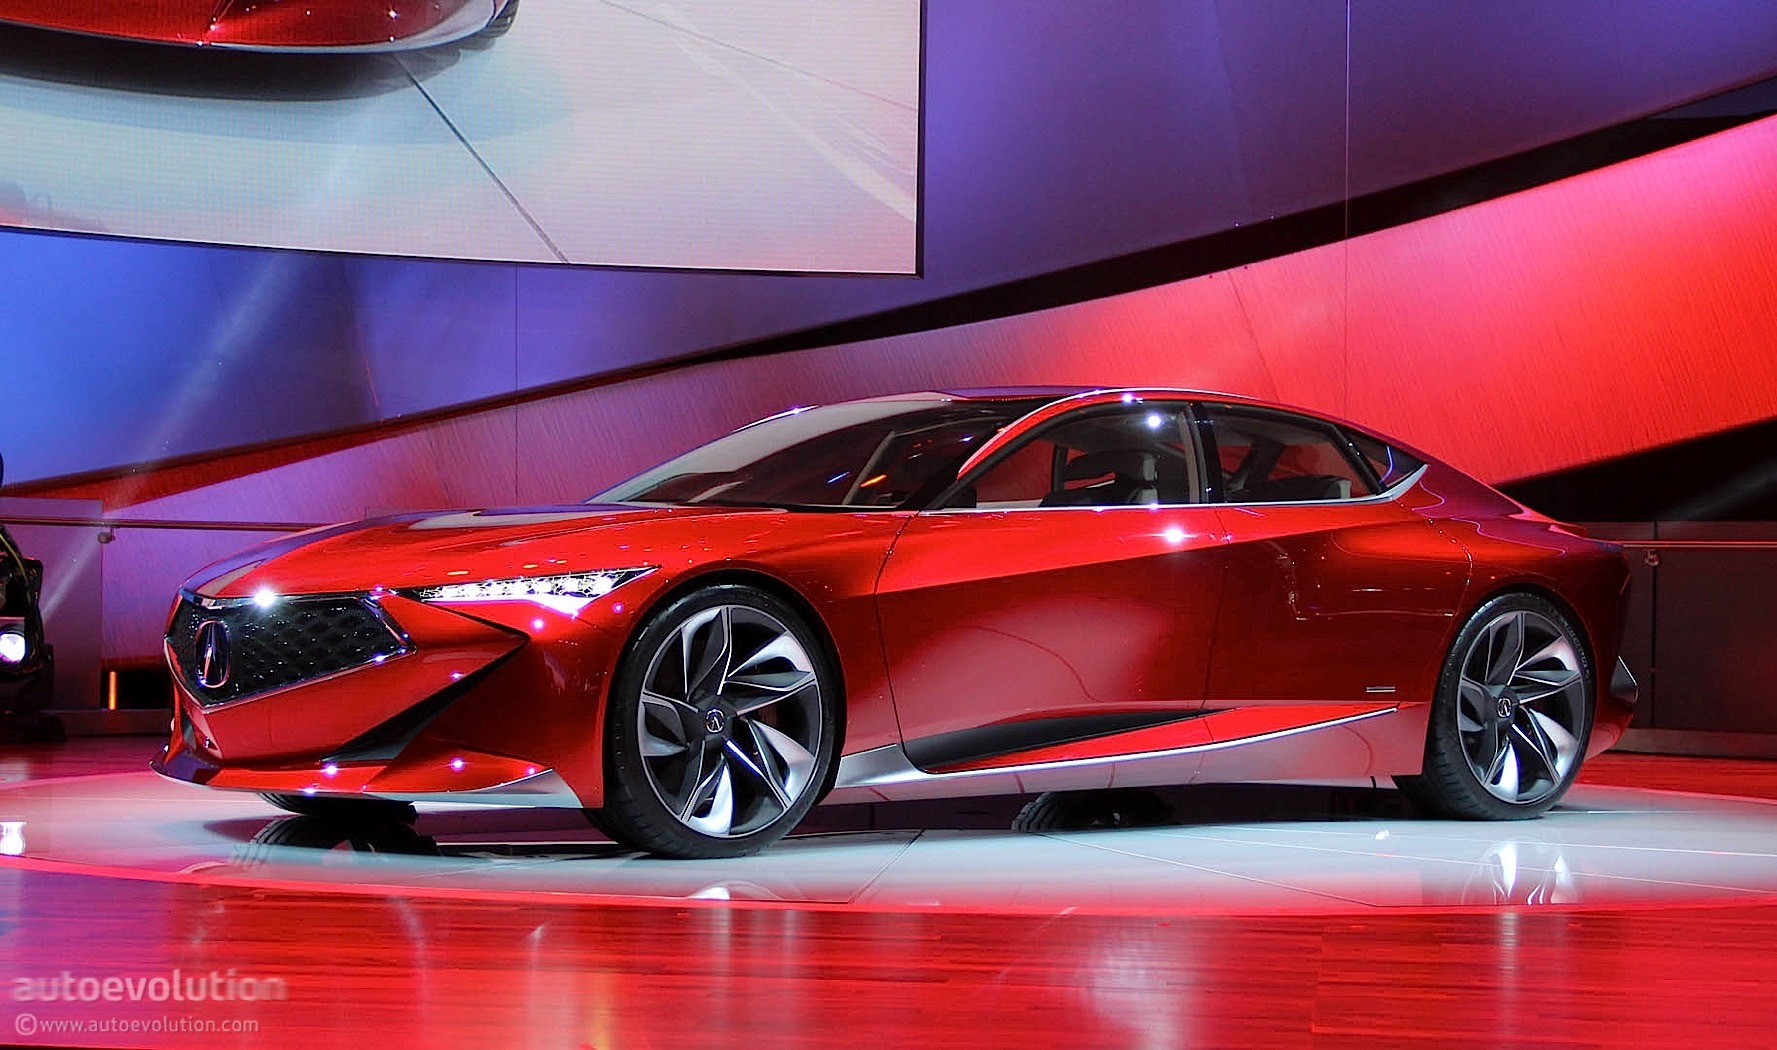 Acura S Next Generation Rlx To Be Inspired By Precision Concept Autoevolution